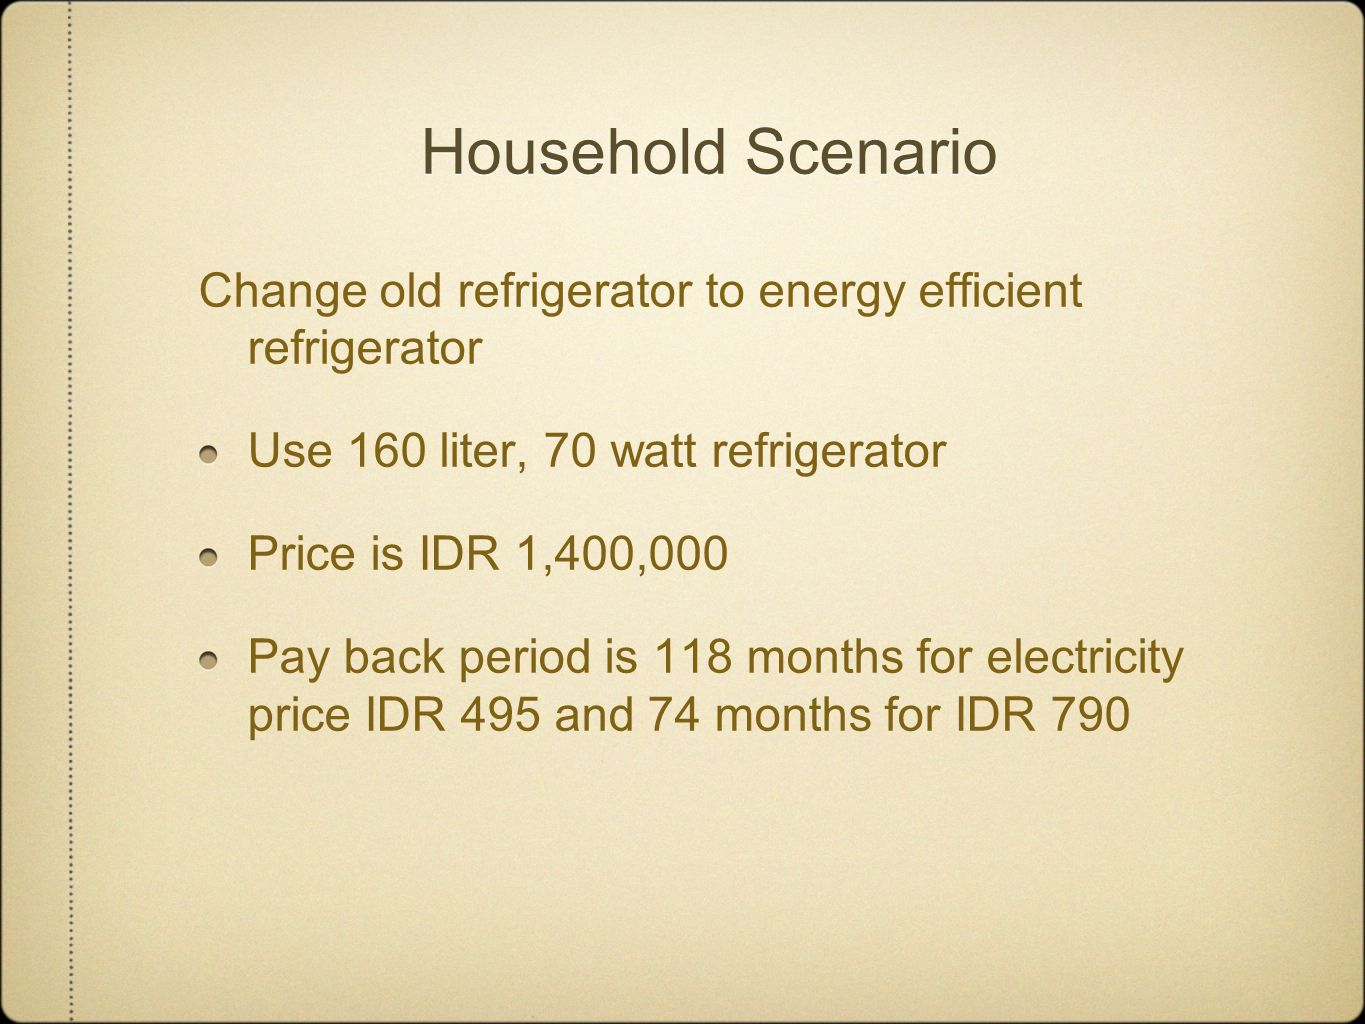 Household Scenario Change old refrigerator to energy efficient refrigerator Use 160 liter, 70 watt refrigerator Price is IDR 1,400,000 Pay back period is 118 months for electricity price IDR 495 and 74 months for IDR 790